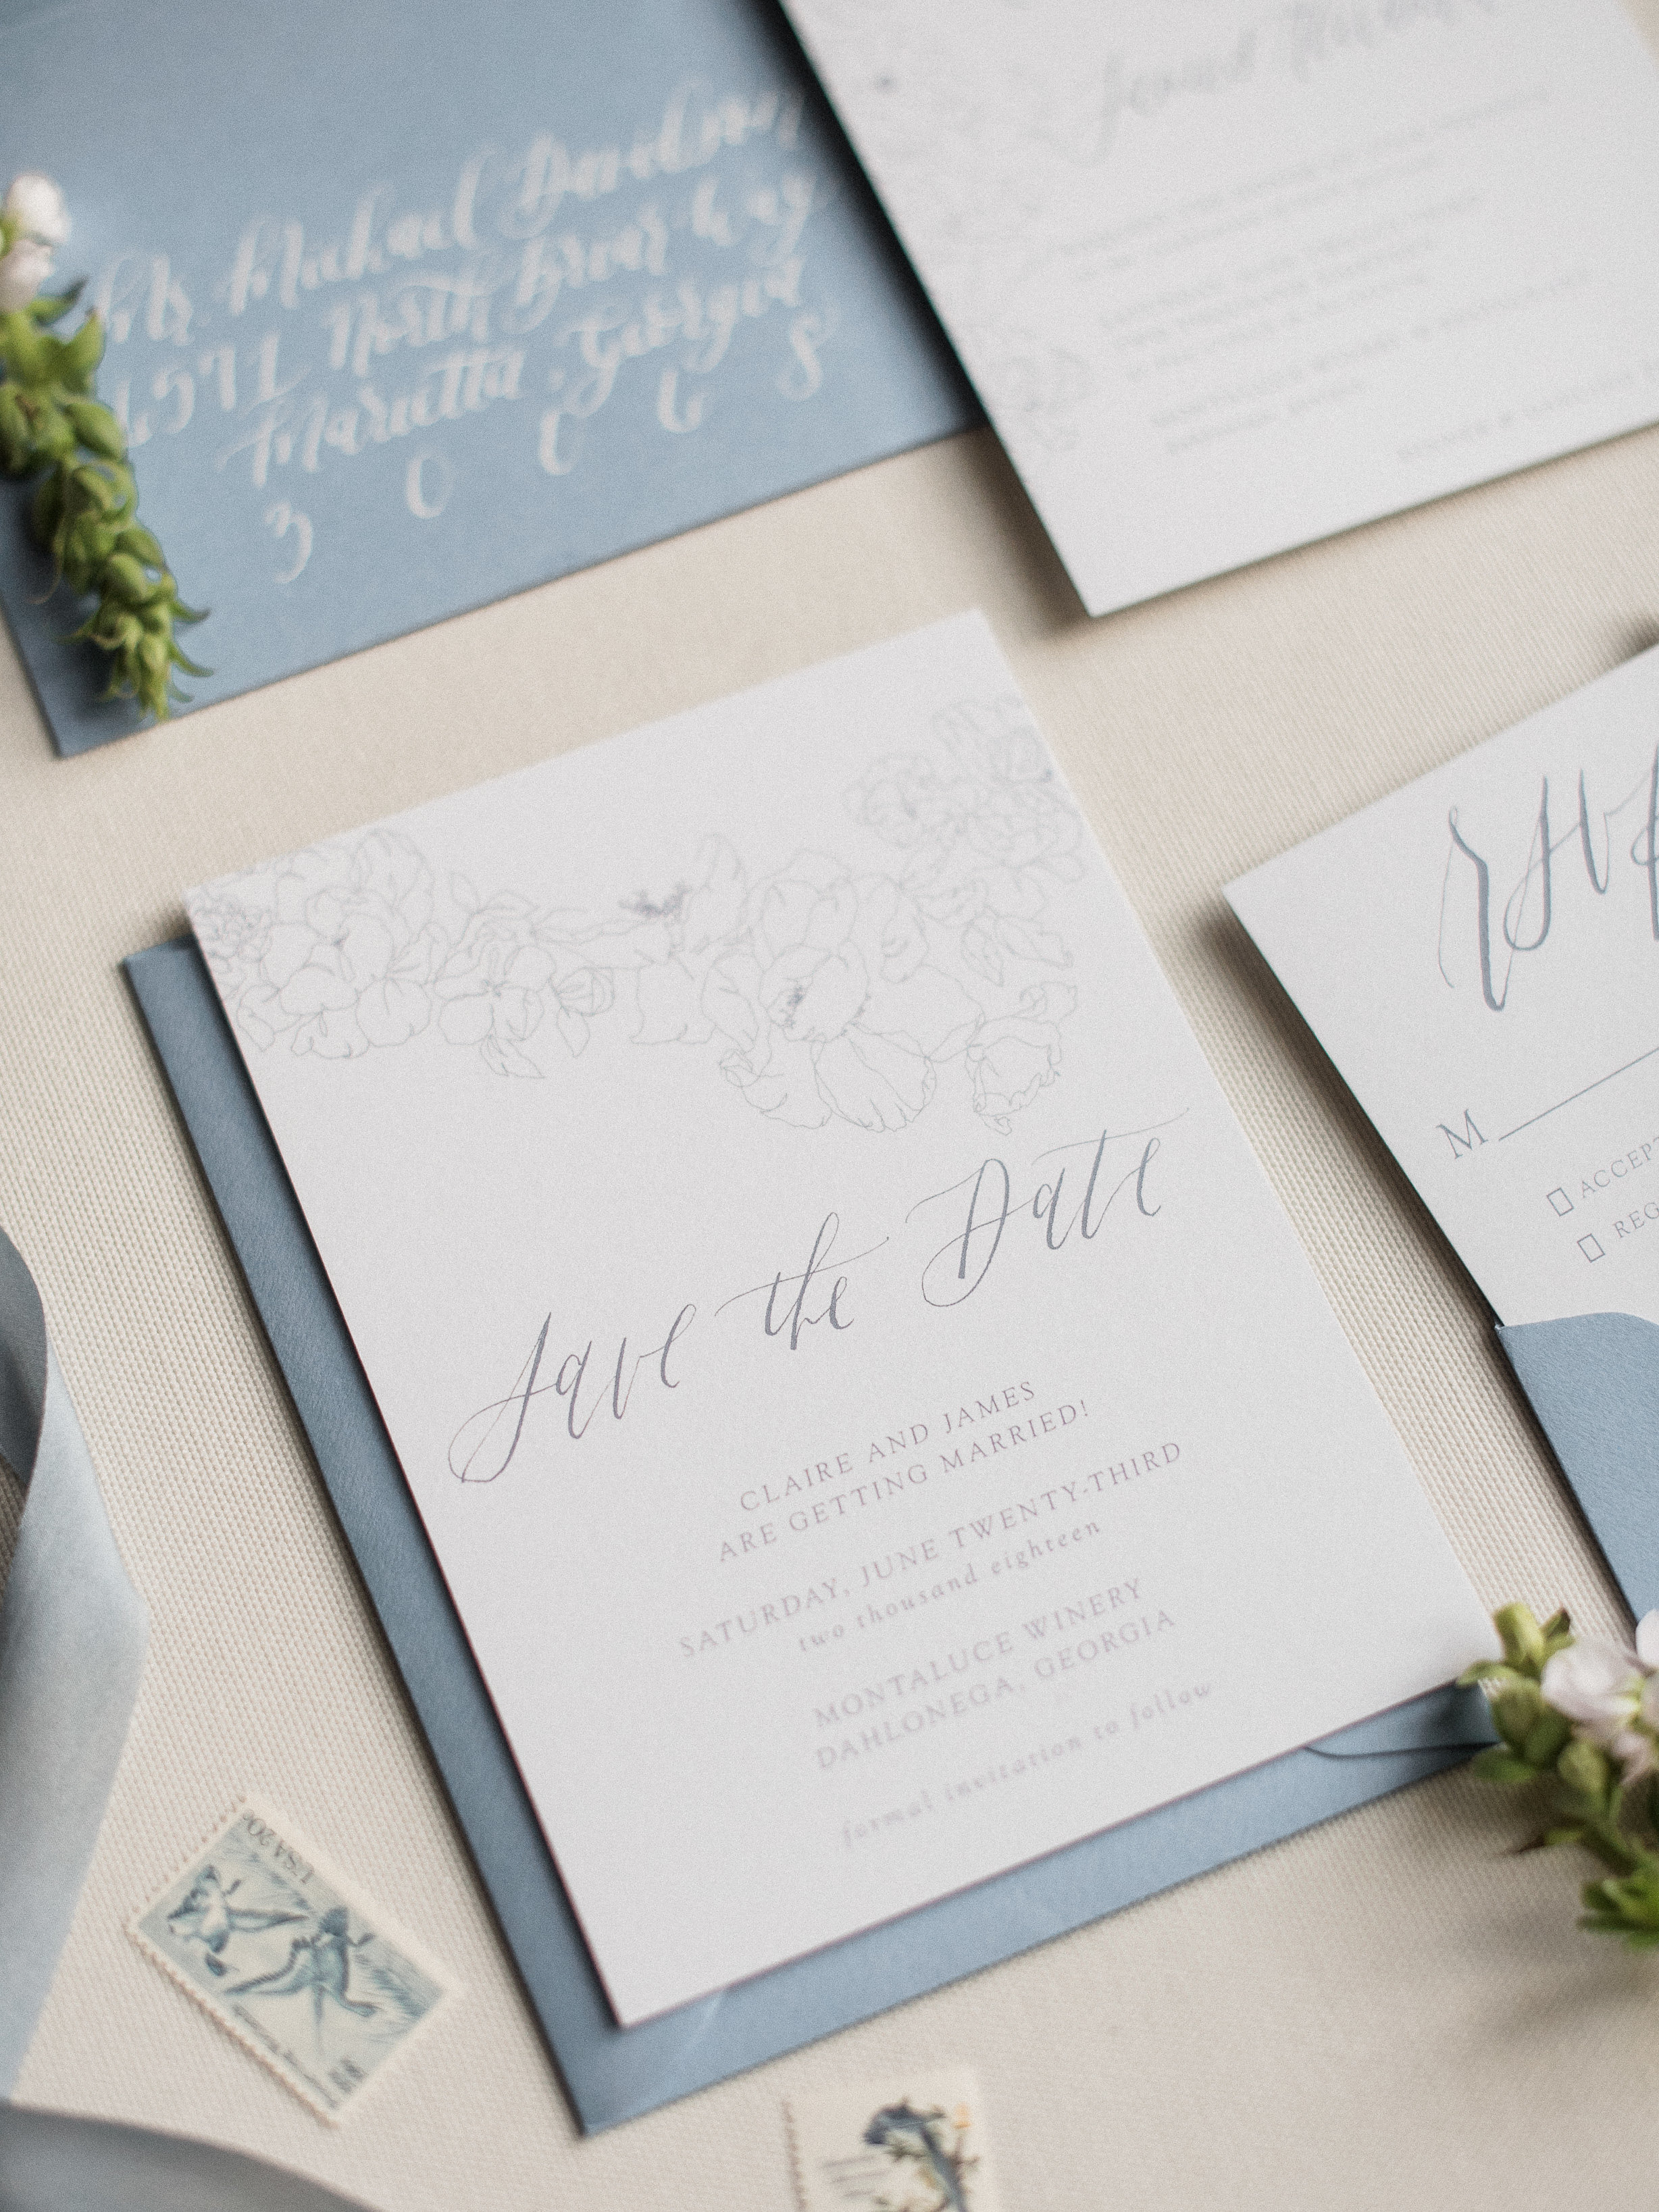 atlanta-calligraphy-wedding-invitations-lairsey-paper-co-hartwell-03.jpg